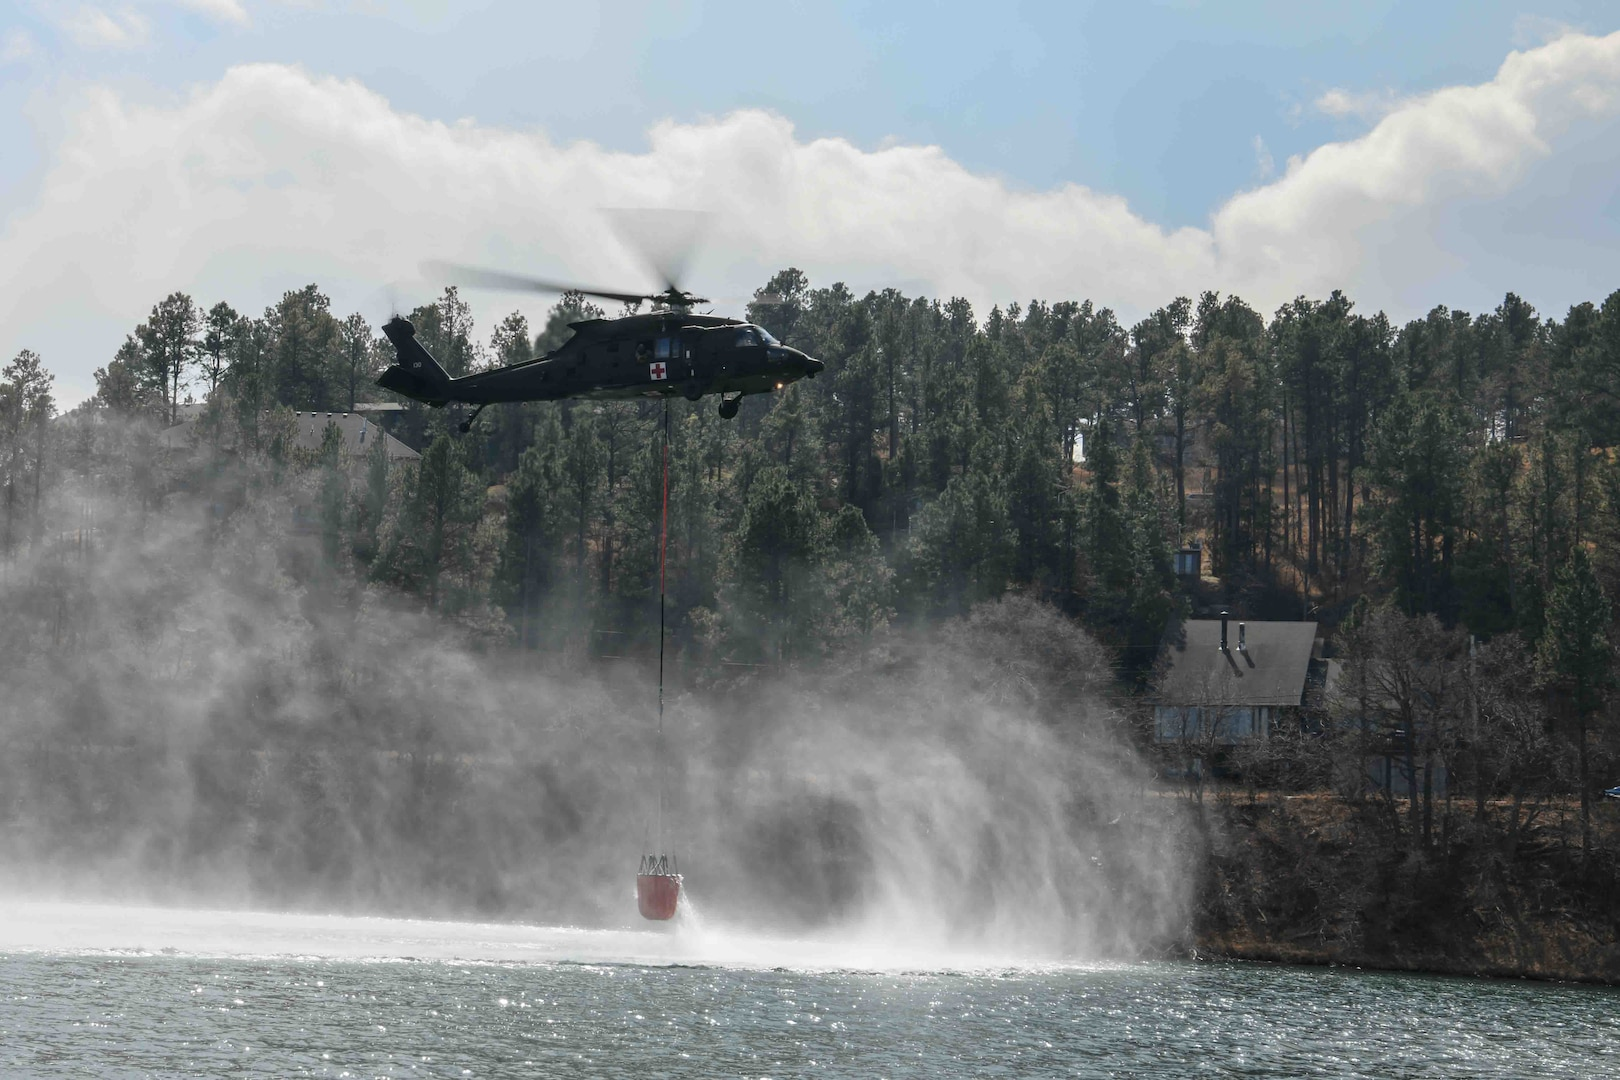 A South Dakota National Guard HH-60 Black Hawk helicopter dips a water bucket into Canyon Lake to help fight Schroeder's Fire in Rapid City, S.D., March 30, 2021. Several dozen South Dakota National Guard members supported local, state and federal agencies to help extinguish the fire.